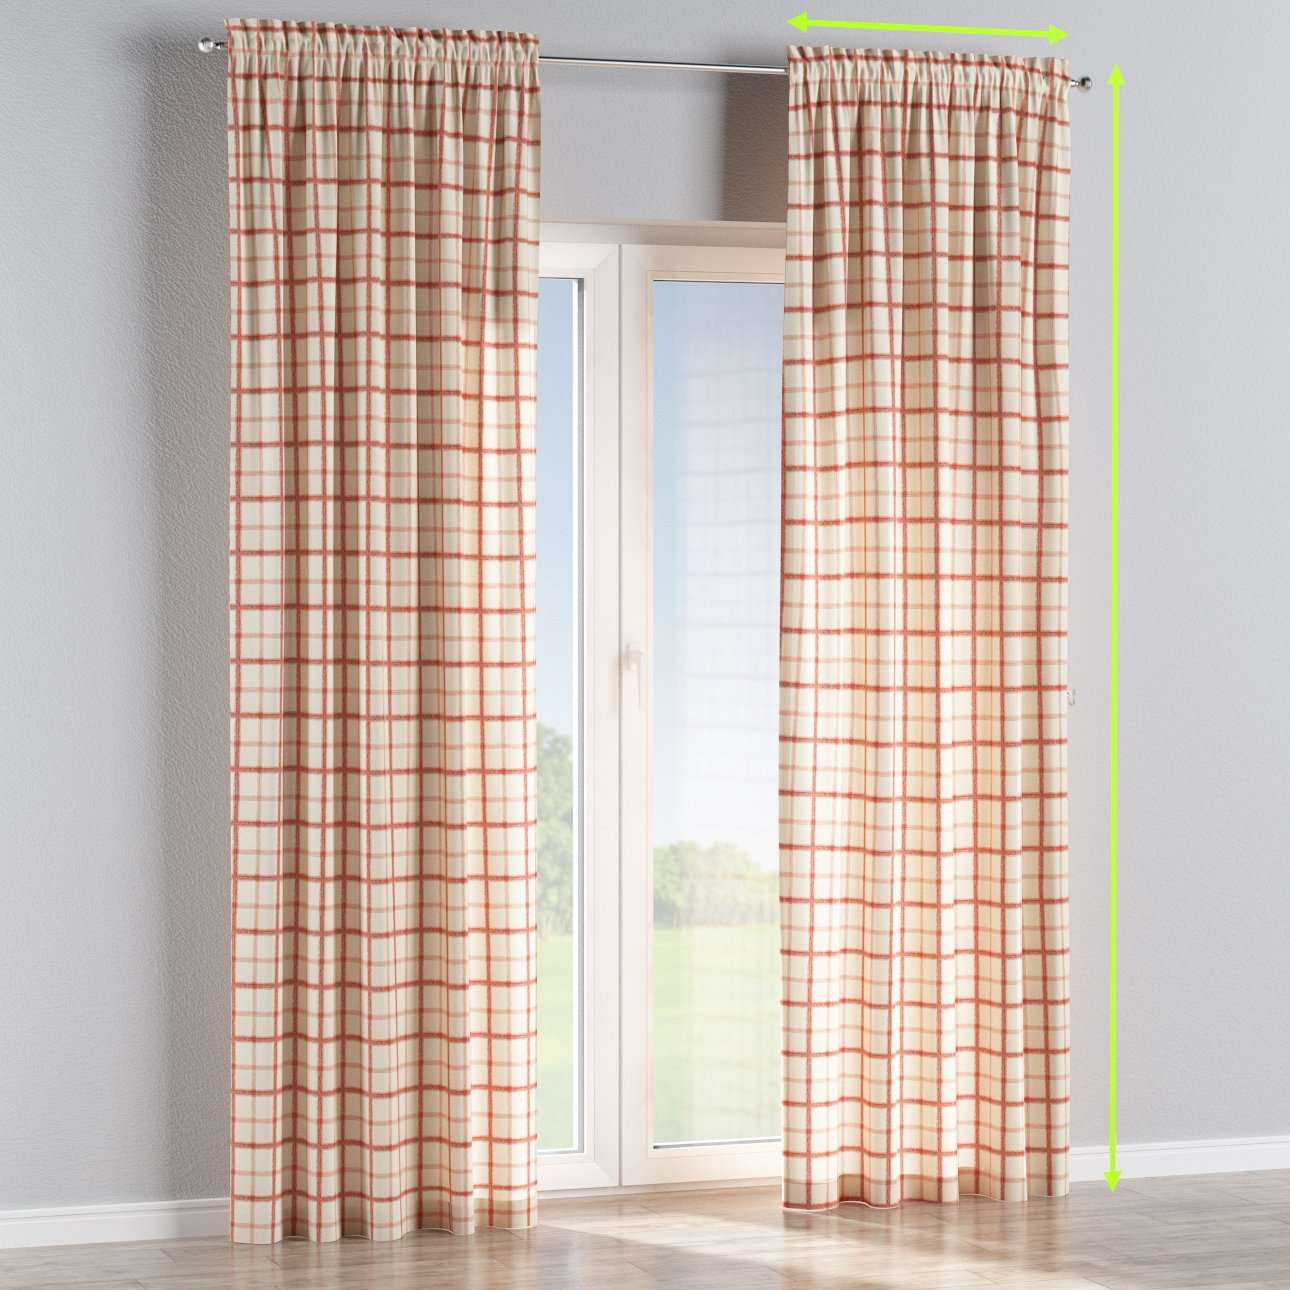 Slot and frill lined curtains in collection Avinon, fabric: 131-15